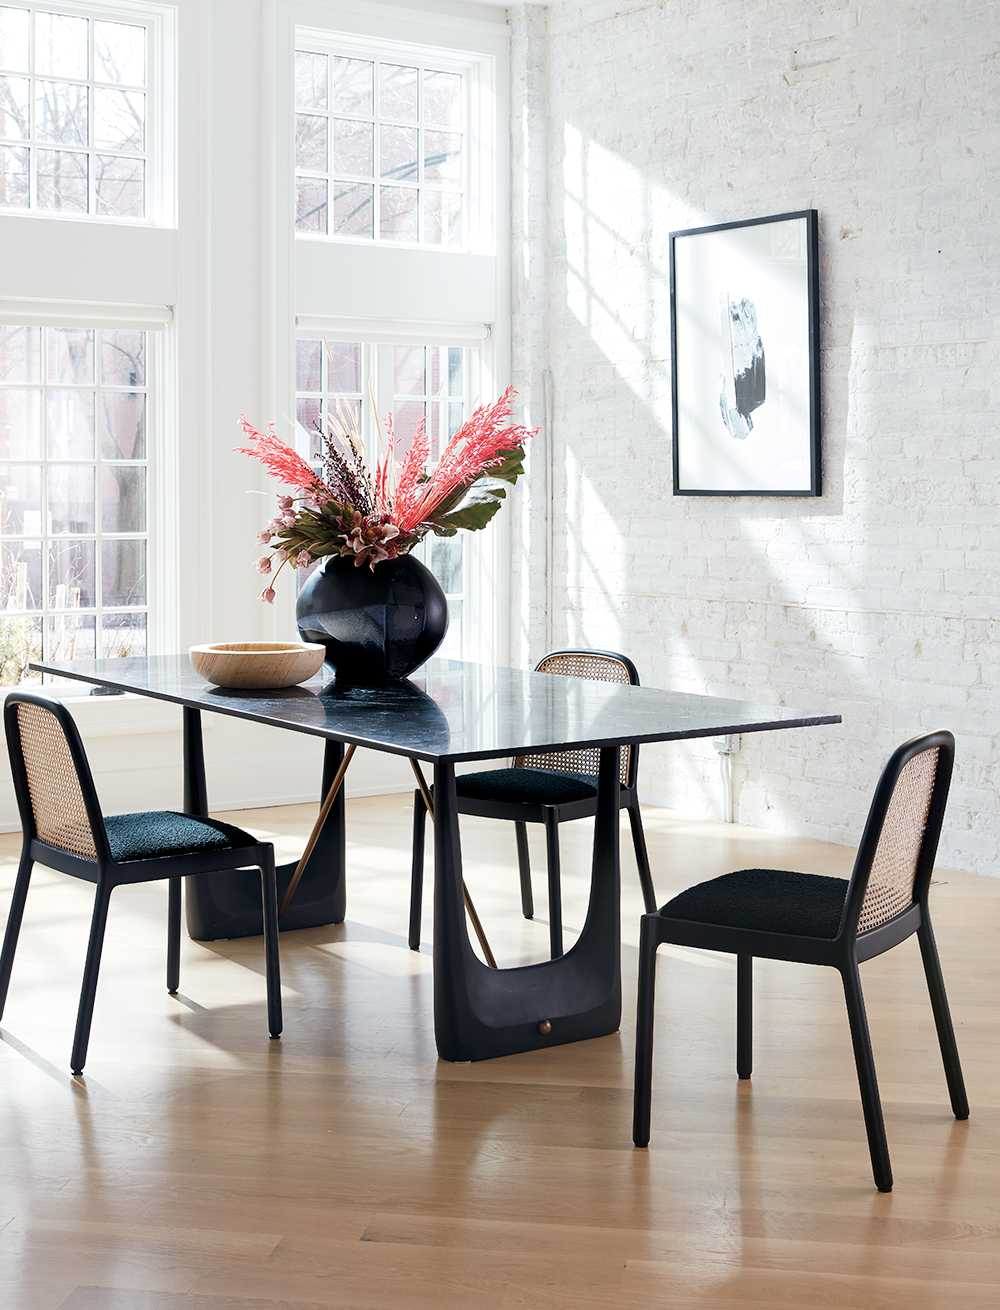 modern furniture dining room | Modern Furniture: Affordable, Unique, Edgy | CB2